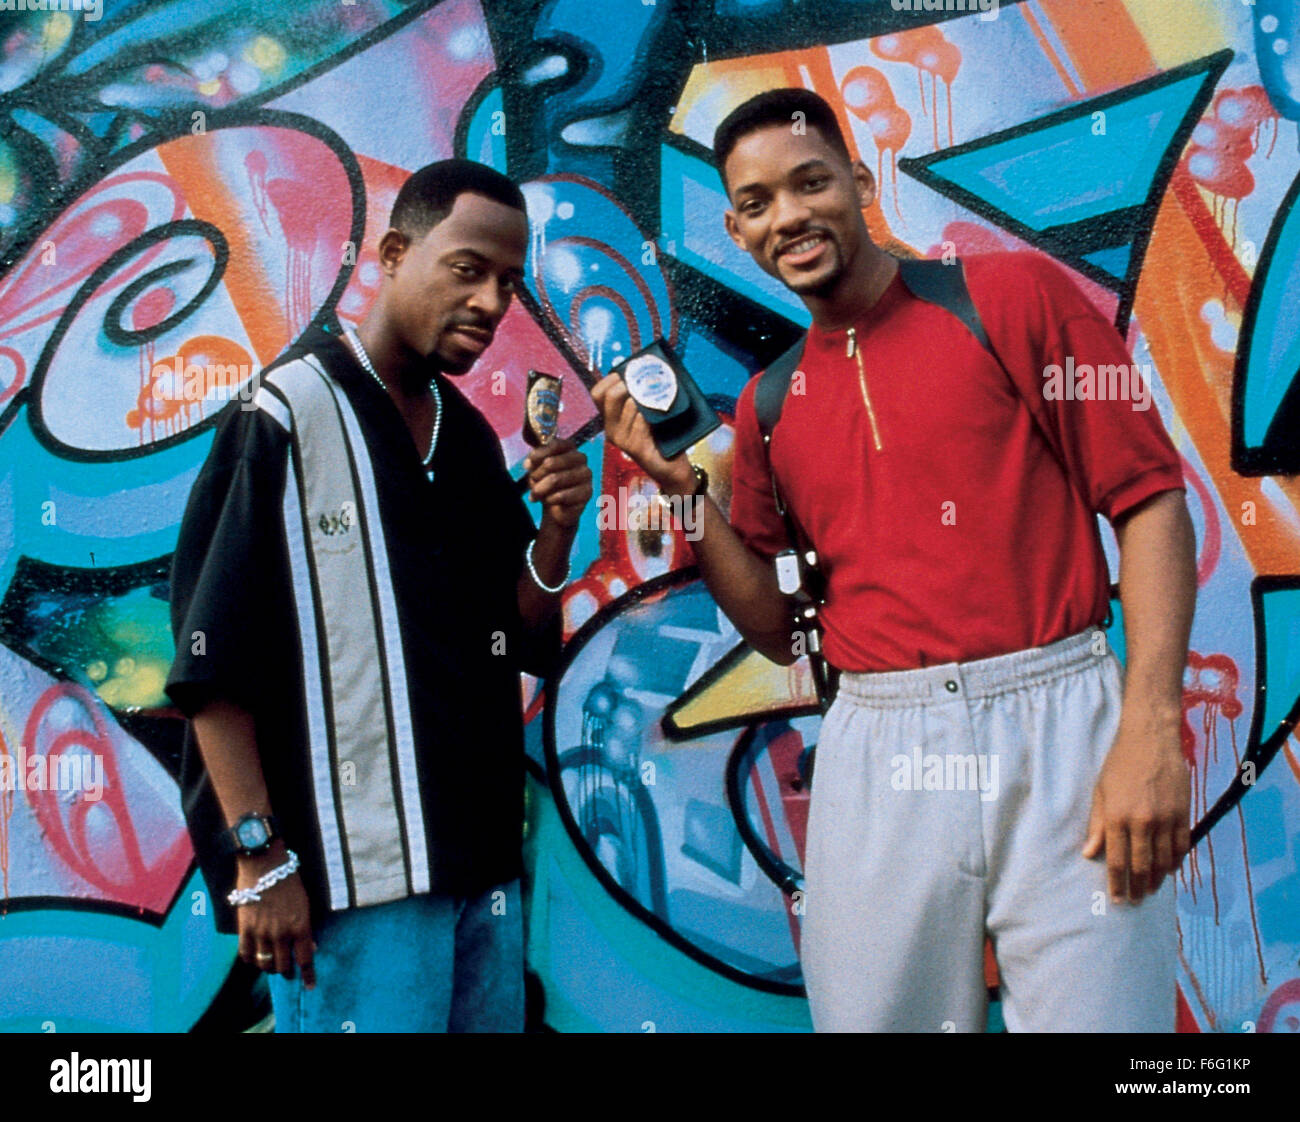 Apr 07, 1995; Miami, FL, USA; Actors MARTIN LAWRENCE As